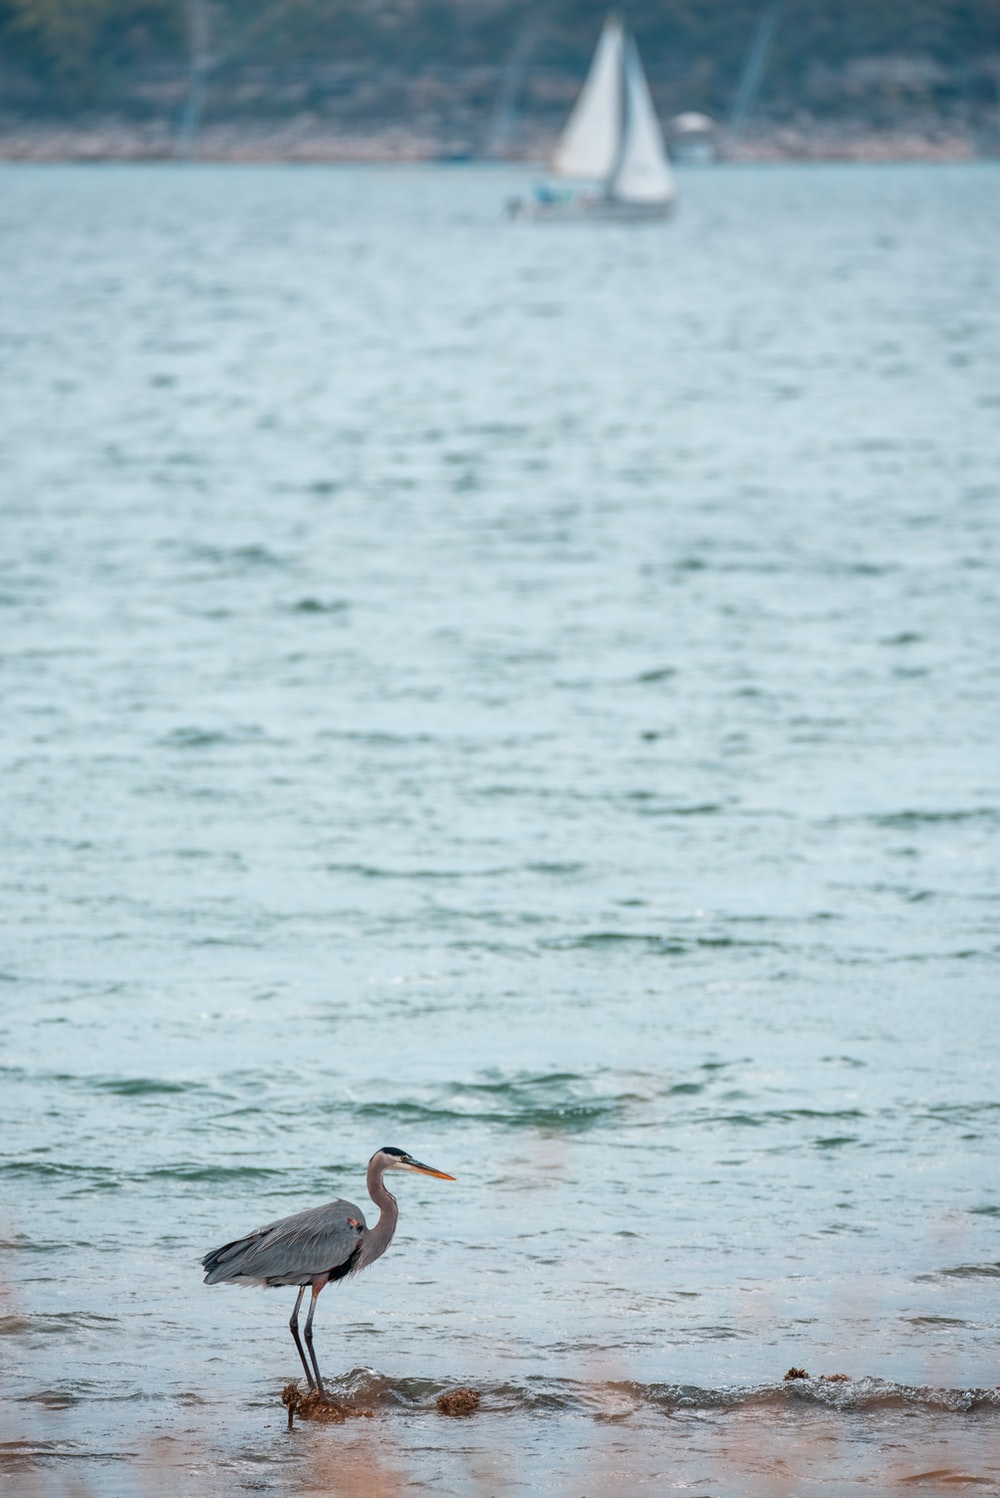 black and white pelican flying over the sea during daytime